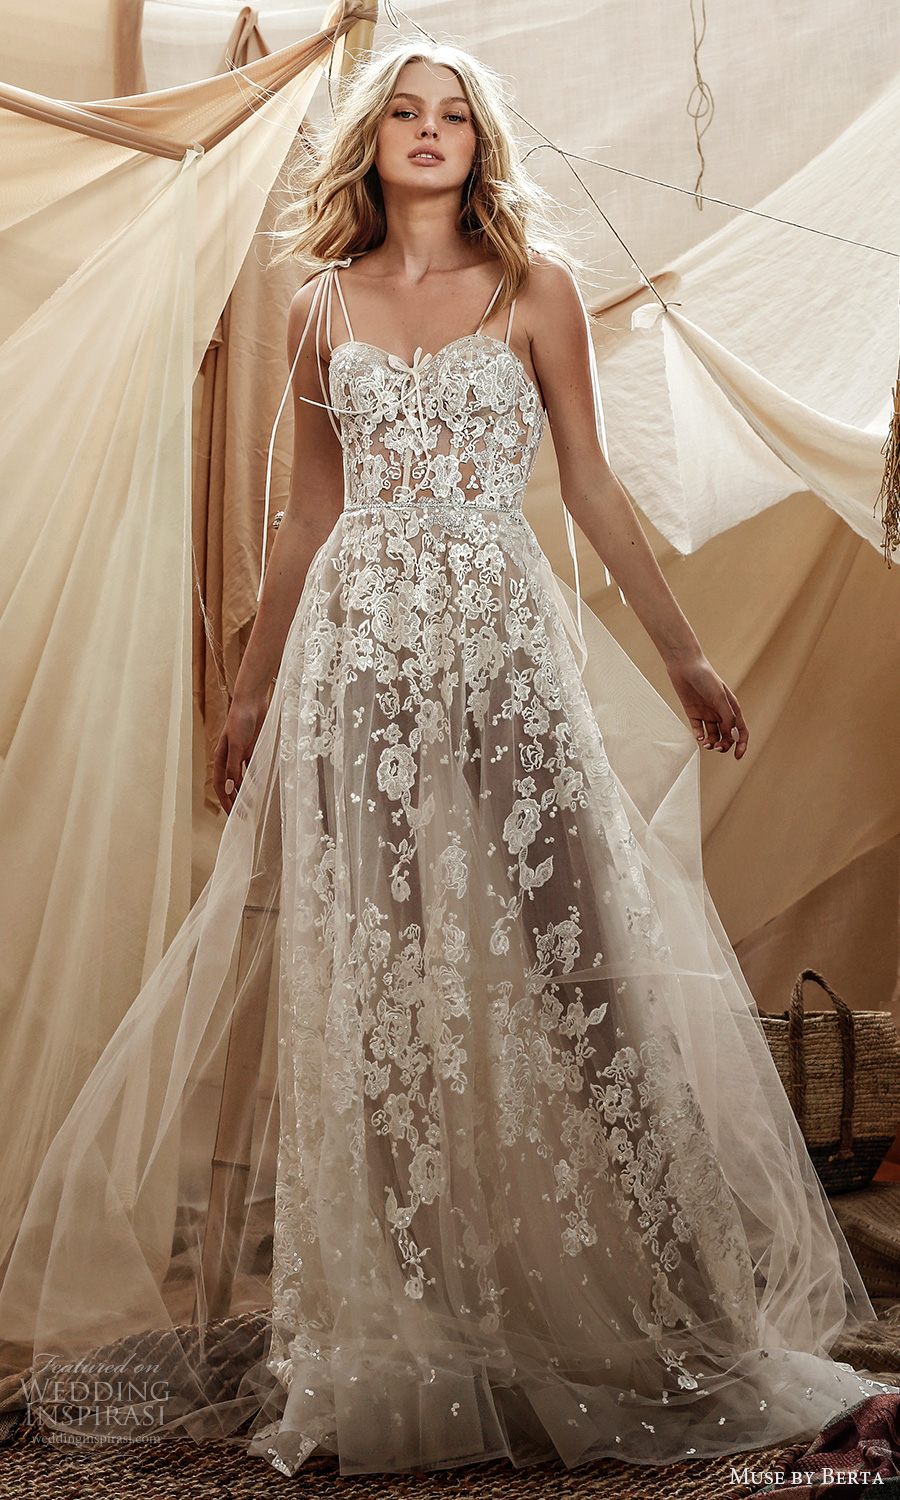 muse by berta spring 2021 bridal sleeveless double straps sweetheart neckline fully embellished lace a line ball gown wedding dress sheer skirt chapel train (15) mv